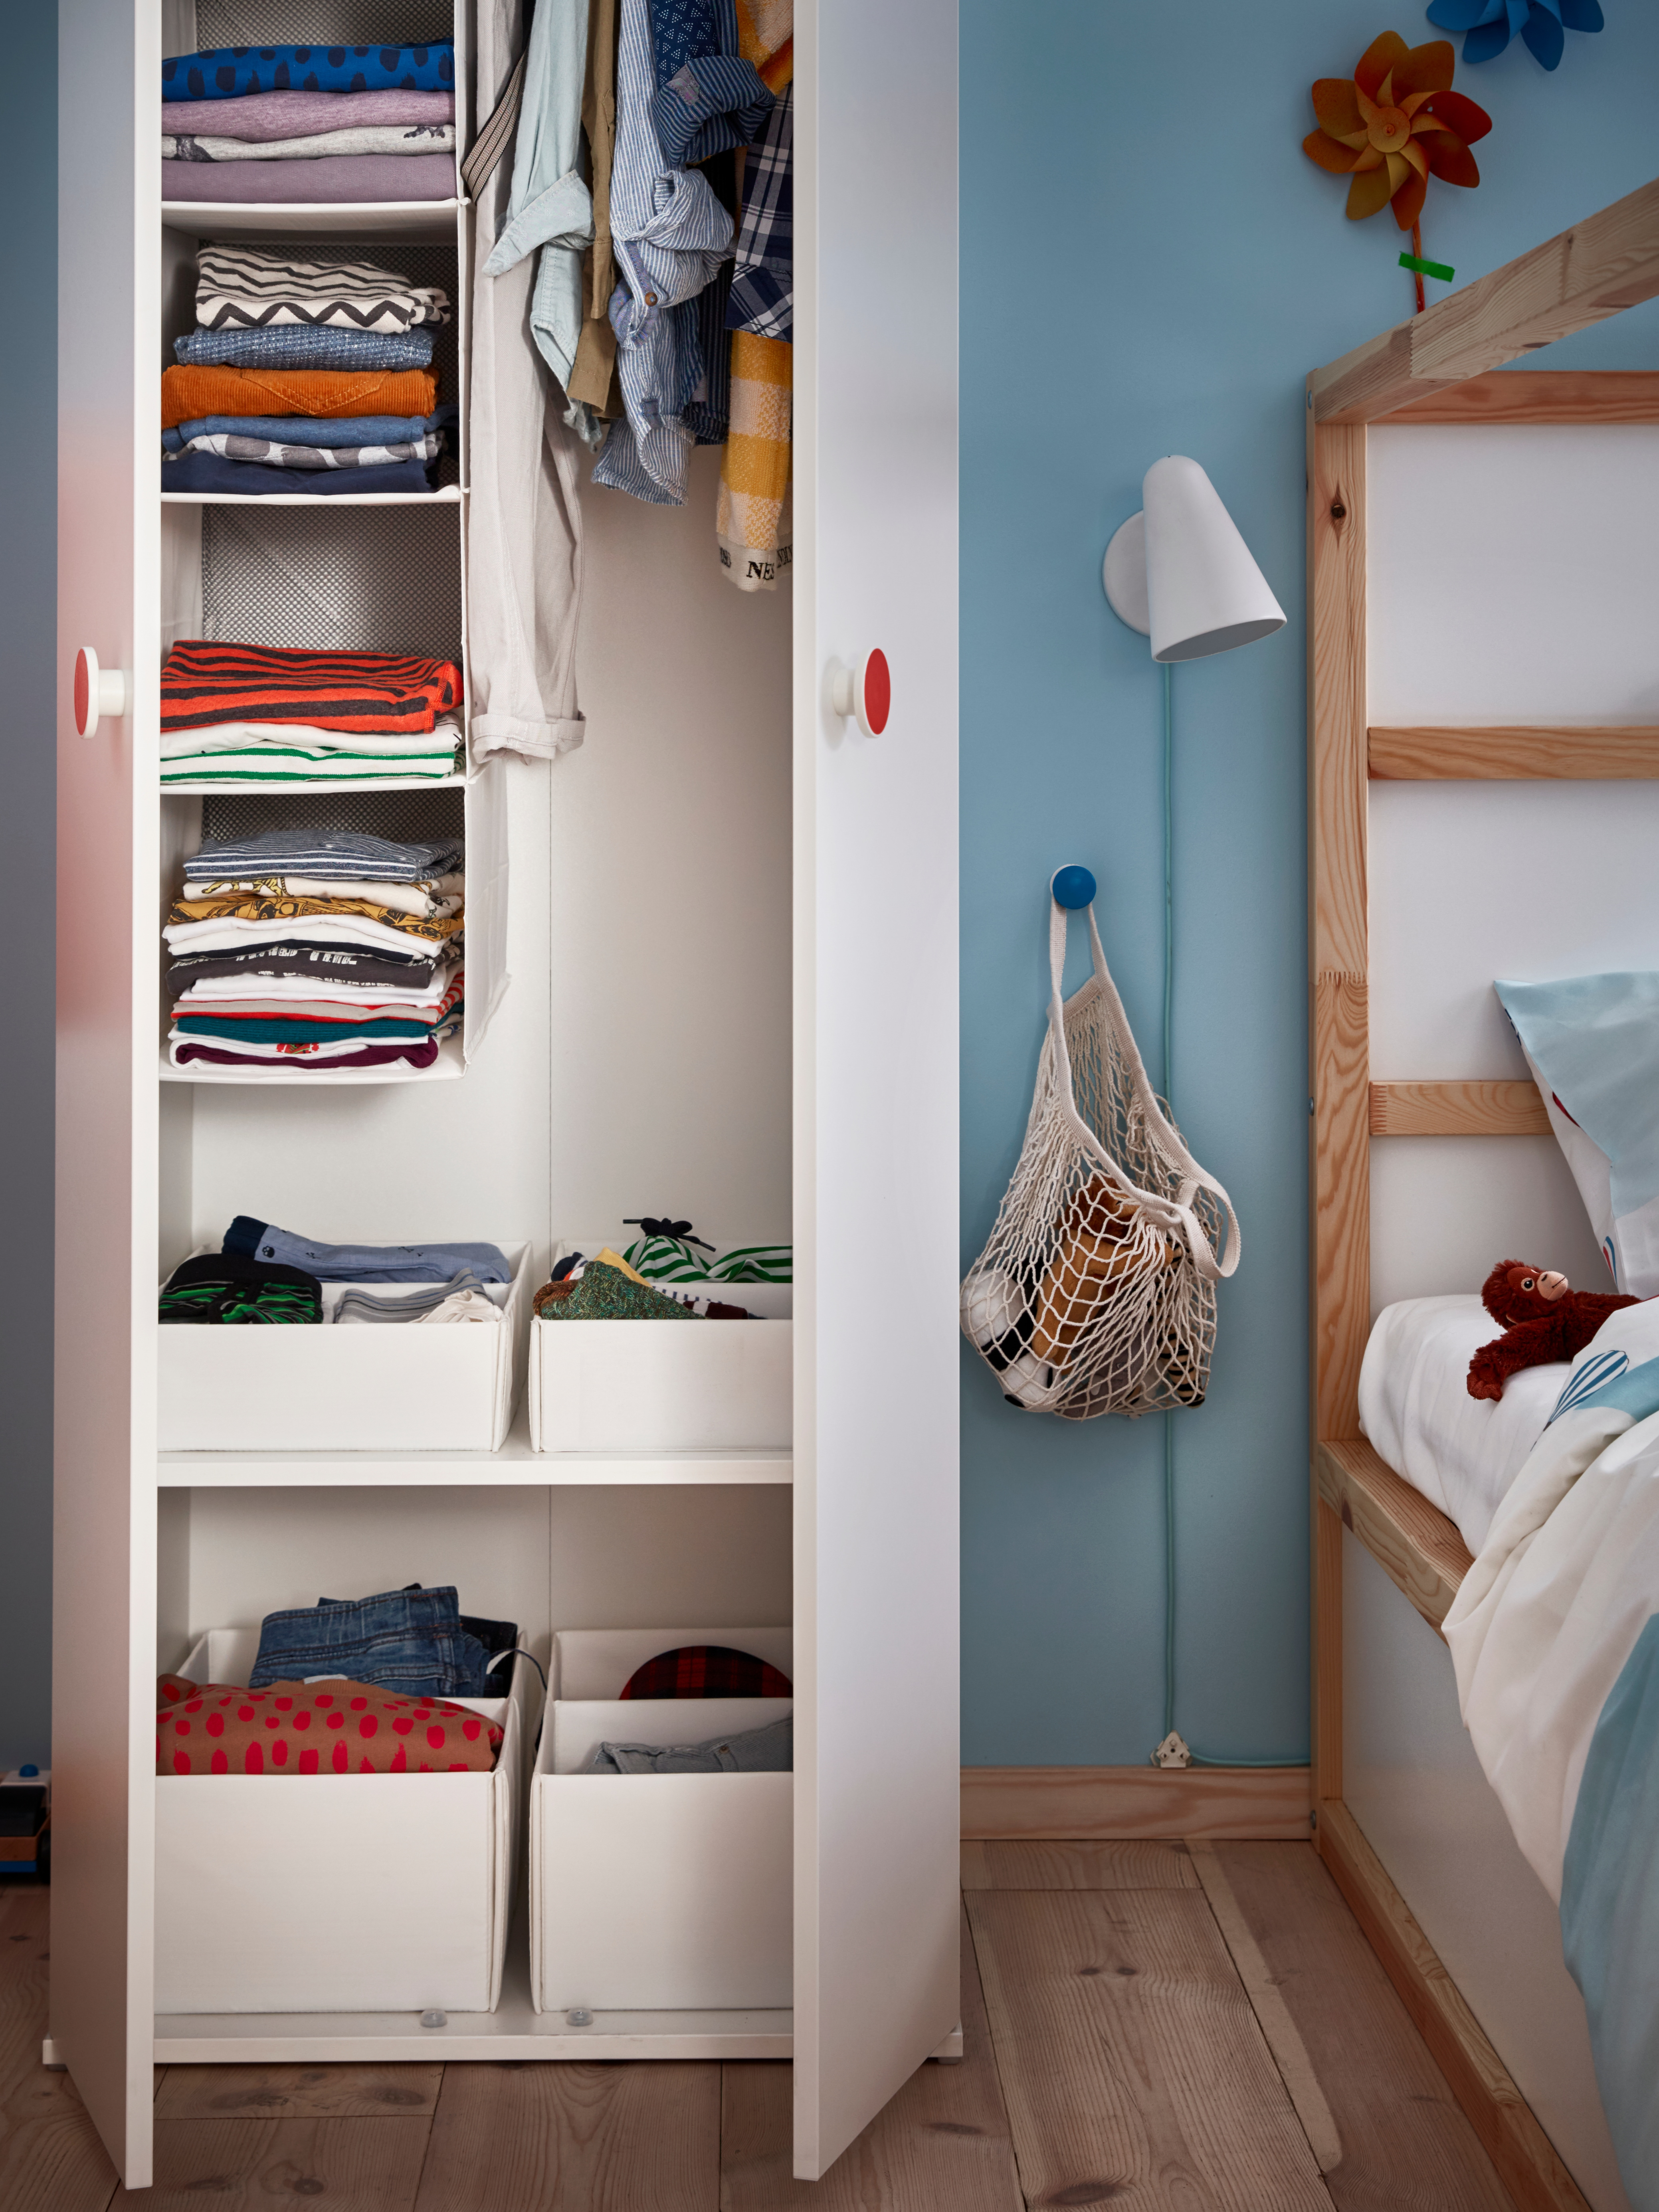 A low cost solution for instant storage - IKEA